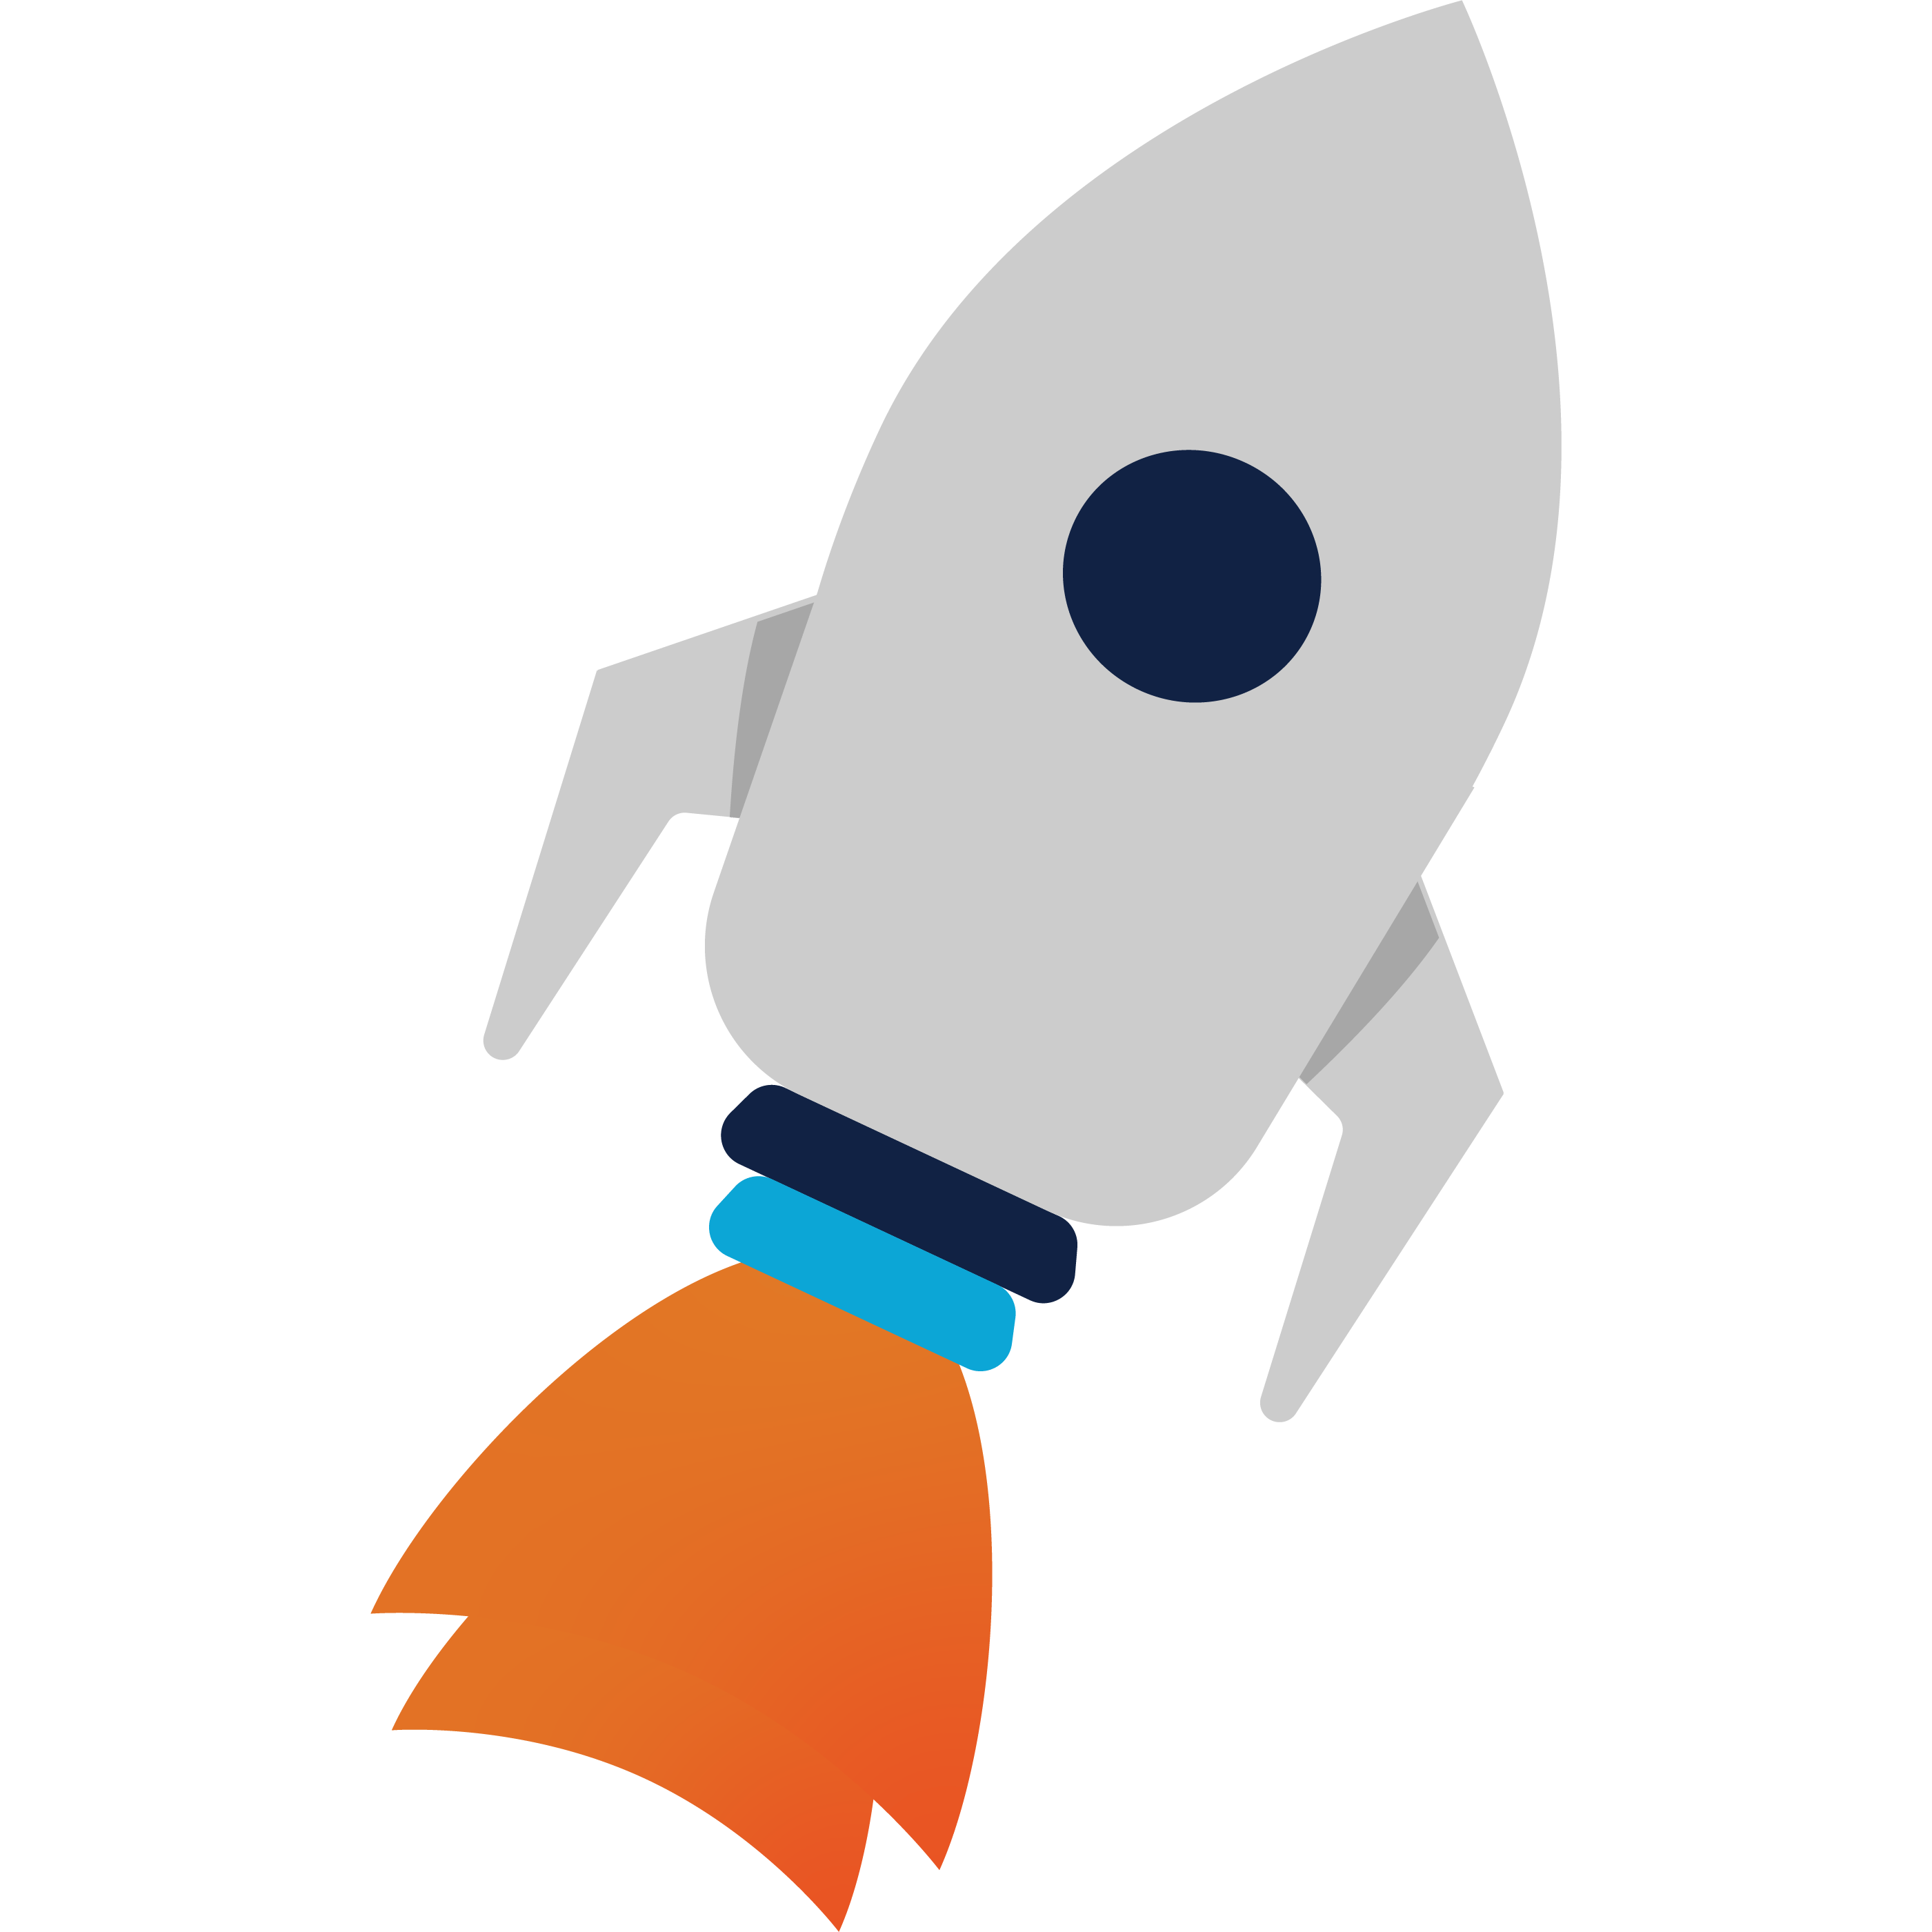 2D Vector Graphic of a Flying Rocket Ship